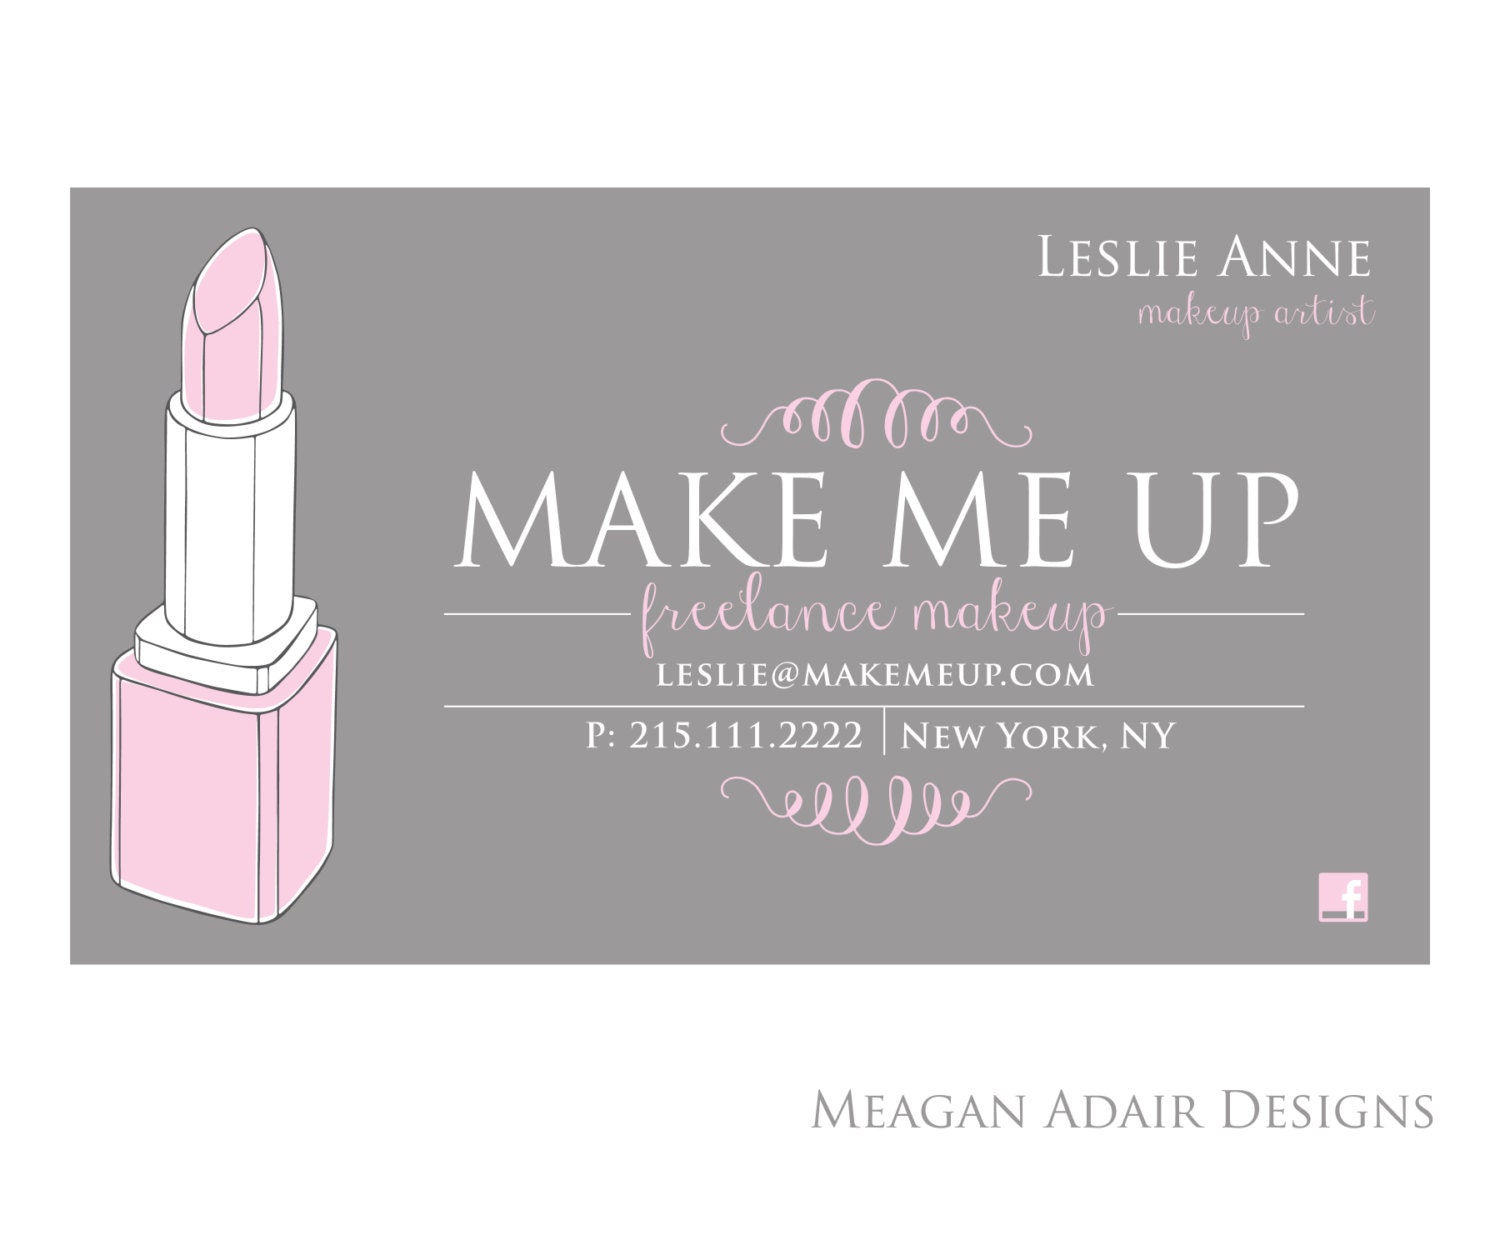 Makeup artist business cards templates business card sample makeup artist business cards ideas fbccfo Choice Image